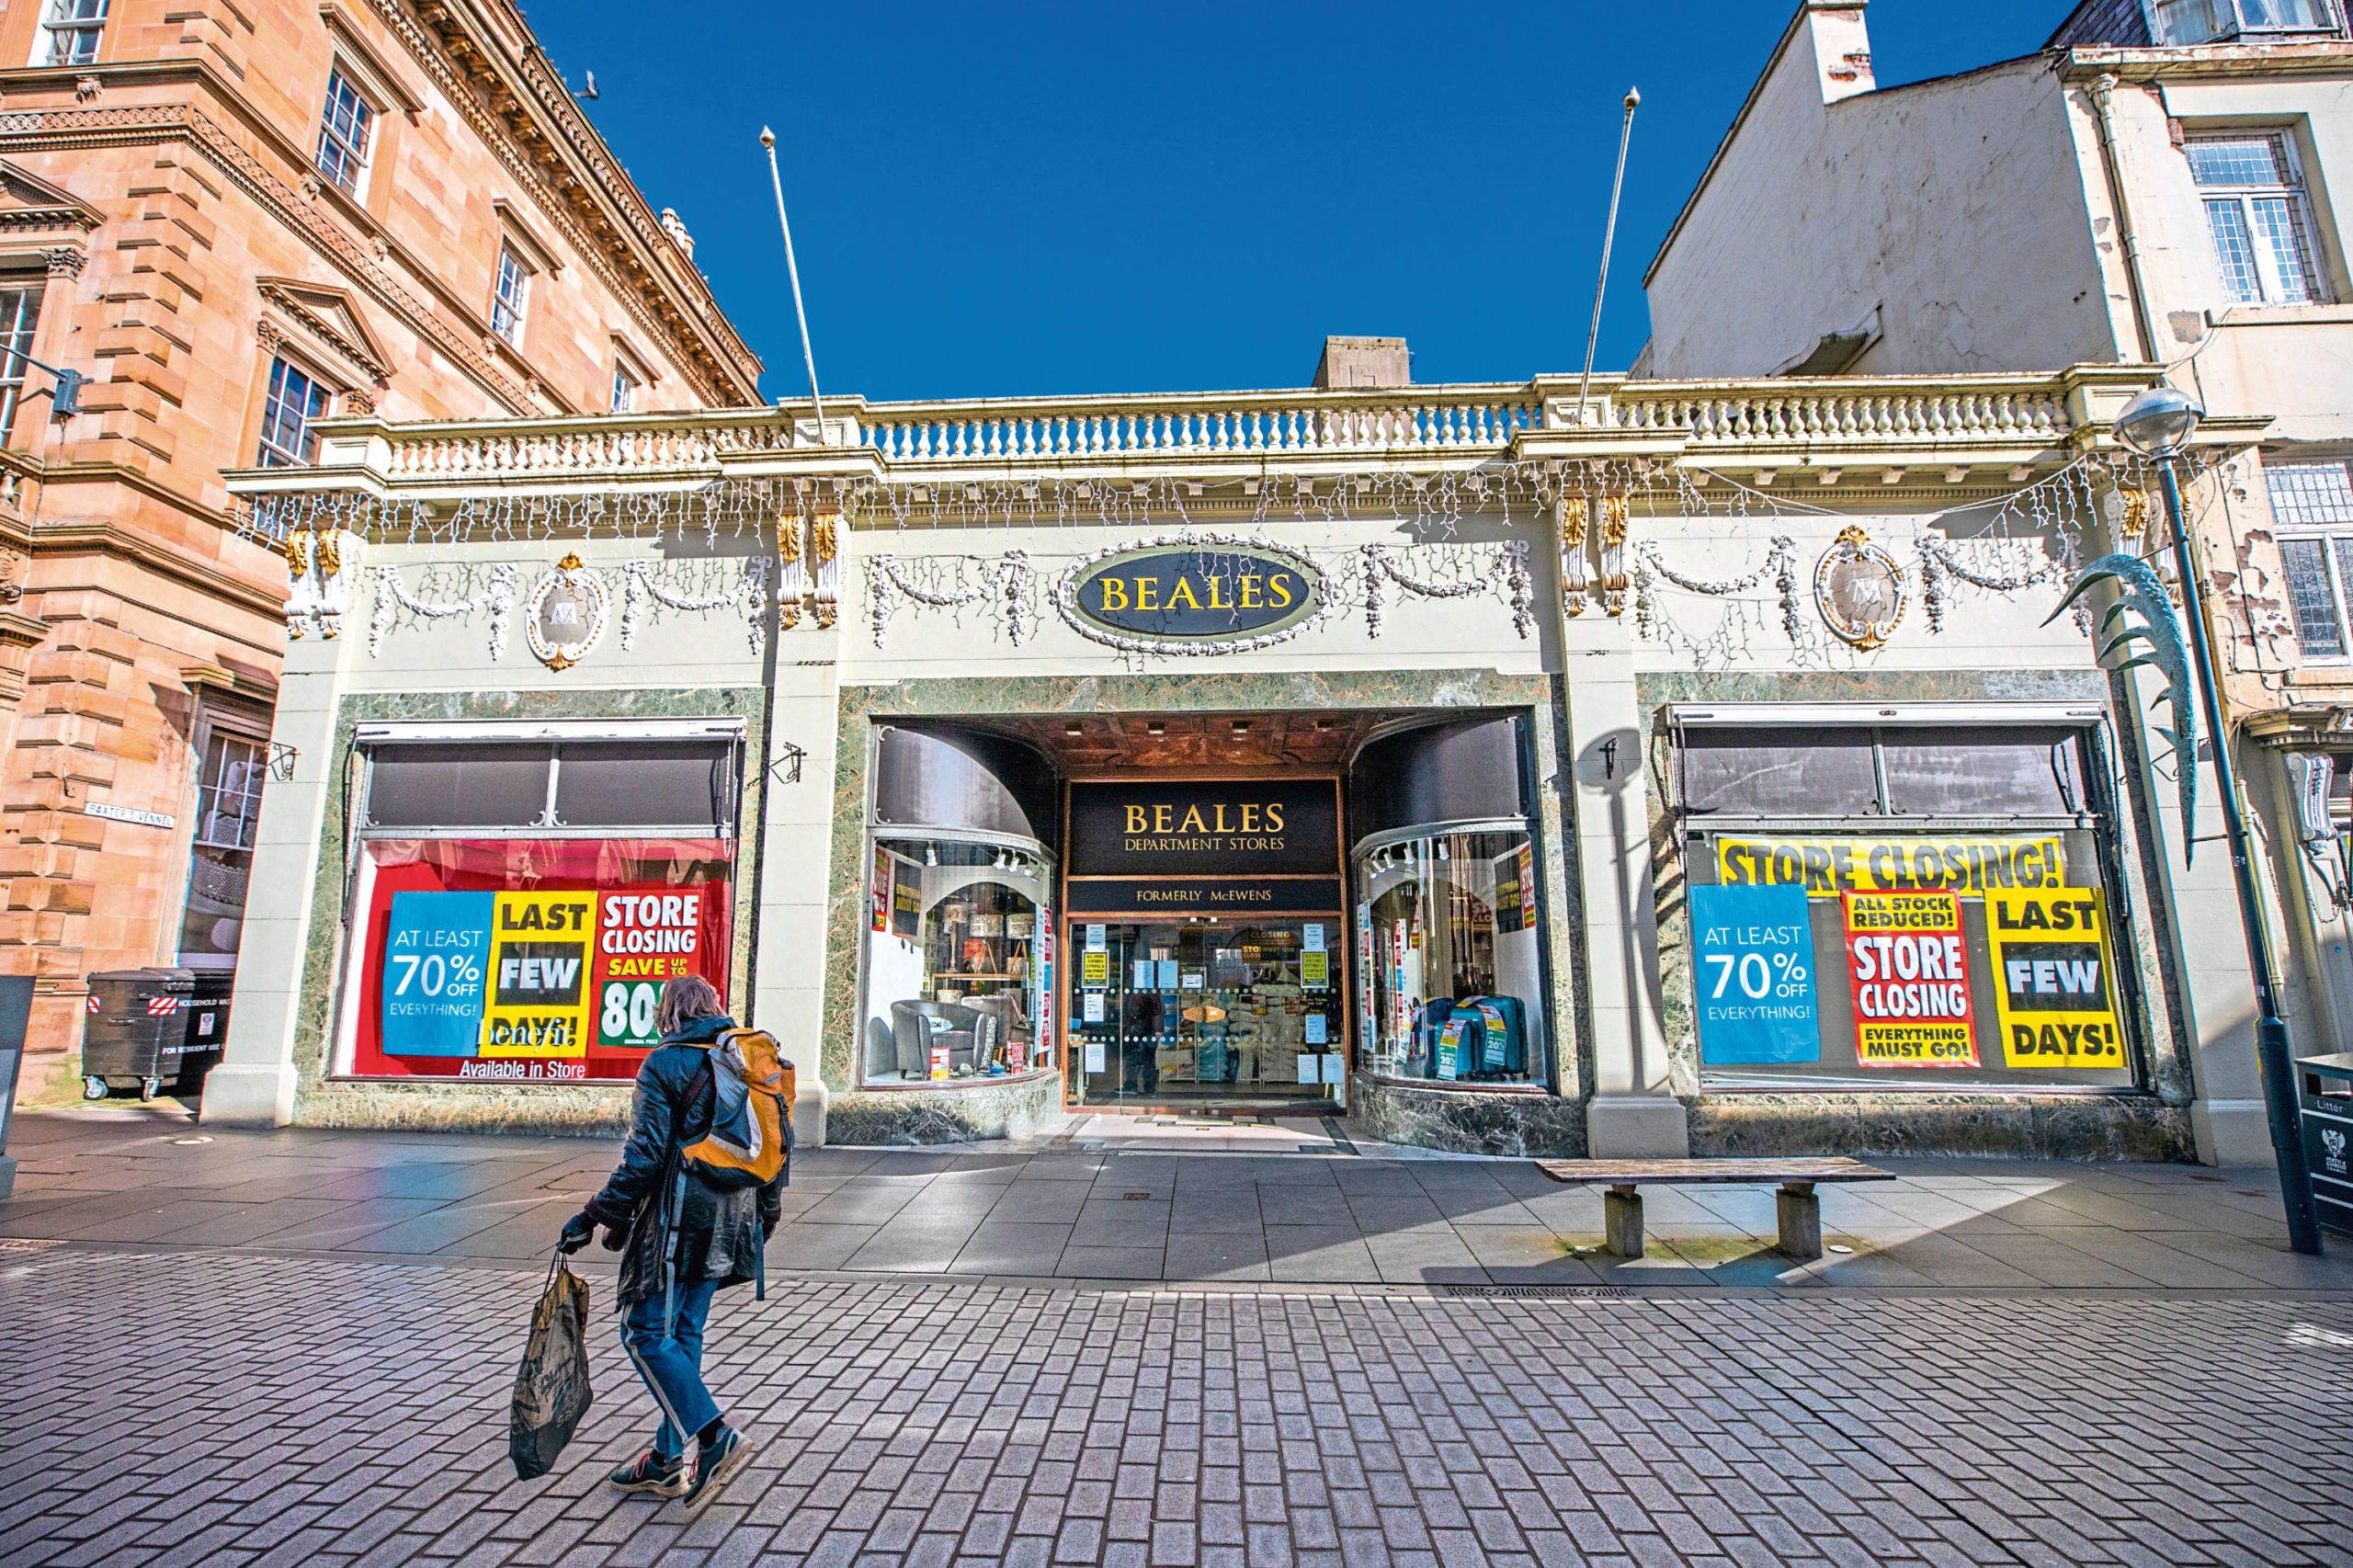 Beales in Perth shortly before it closed its doors for the final time last month.